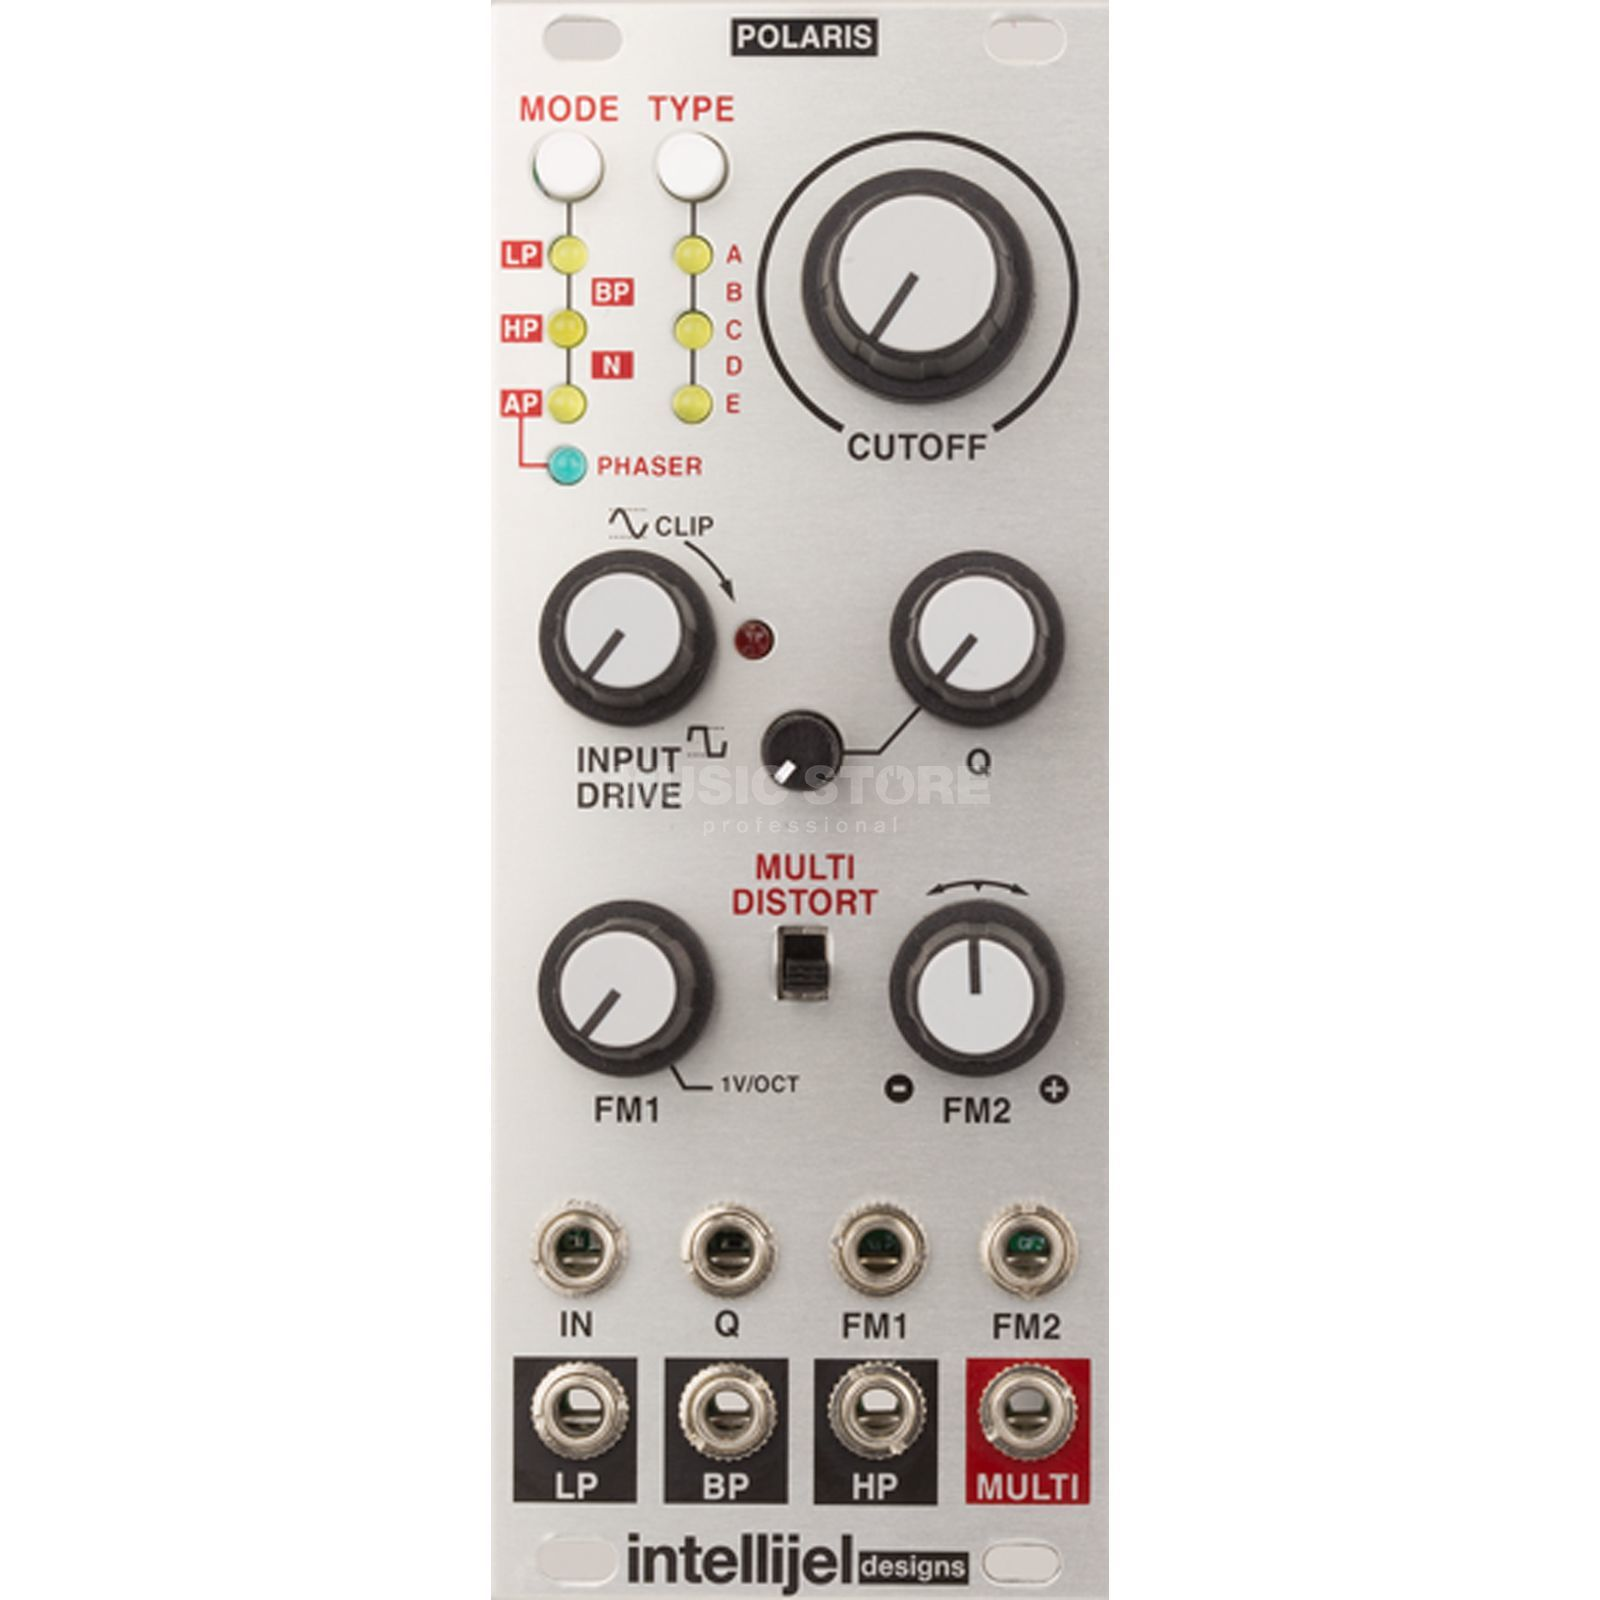 Intellijel Polaris Product Image